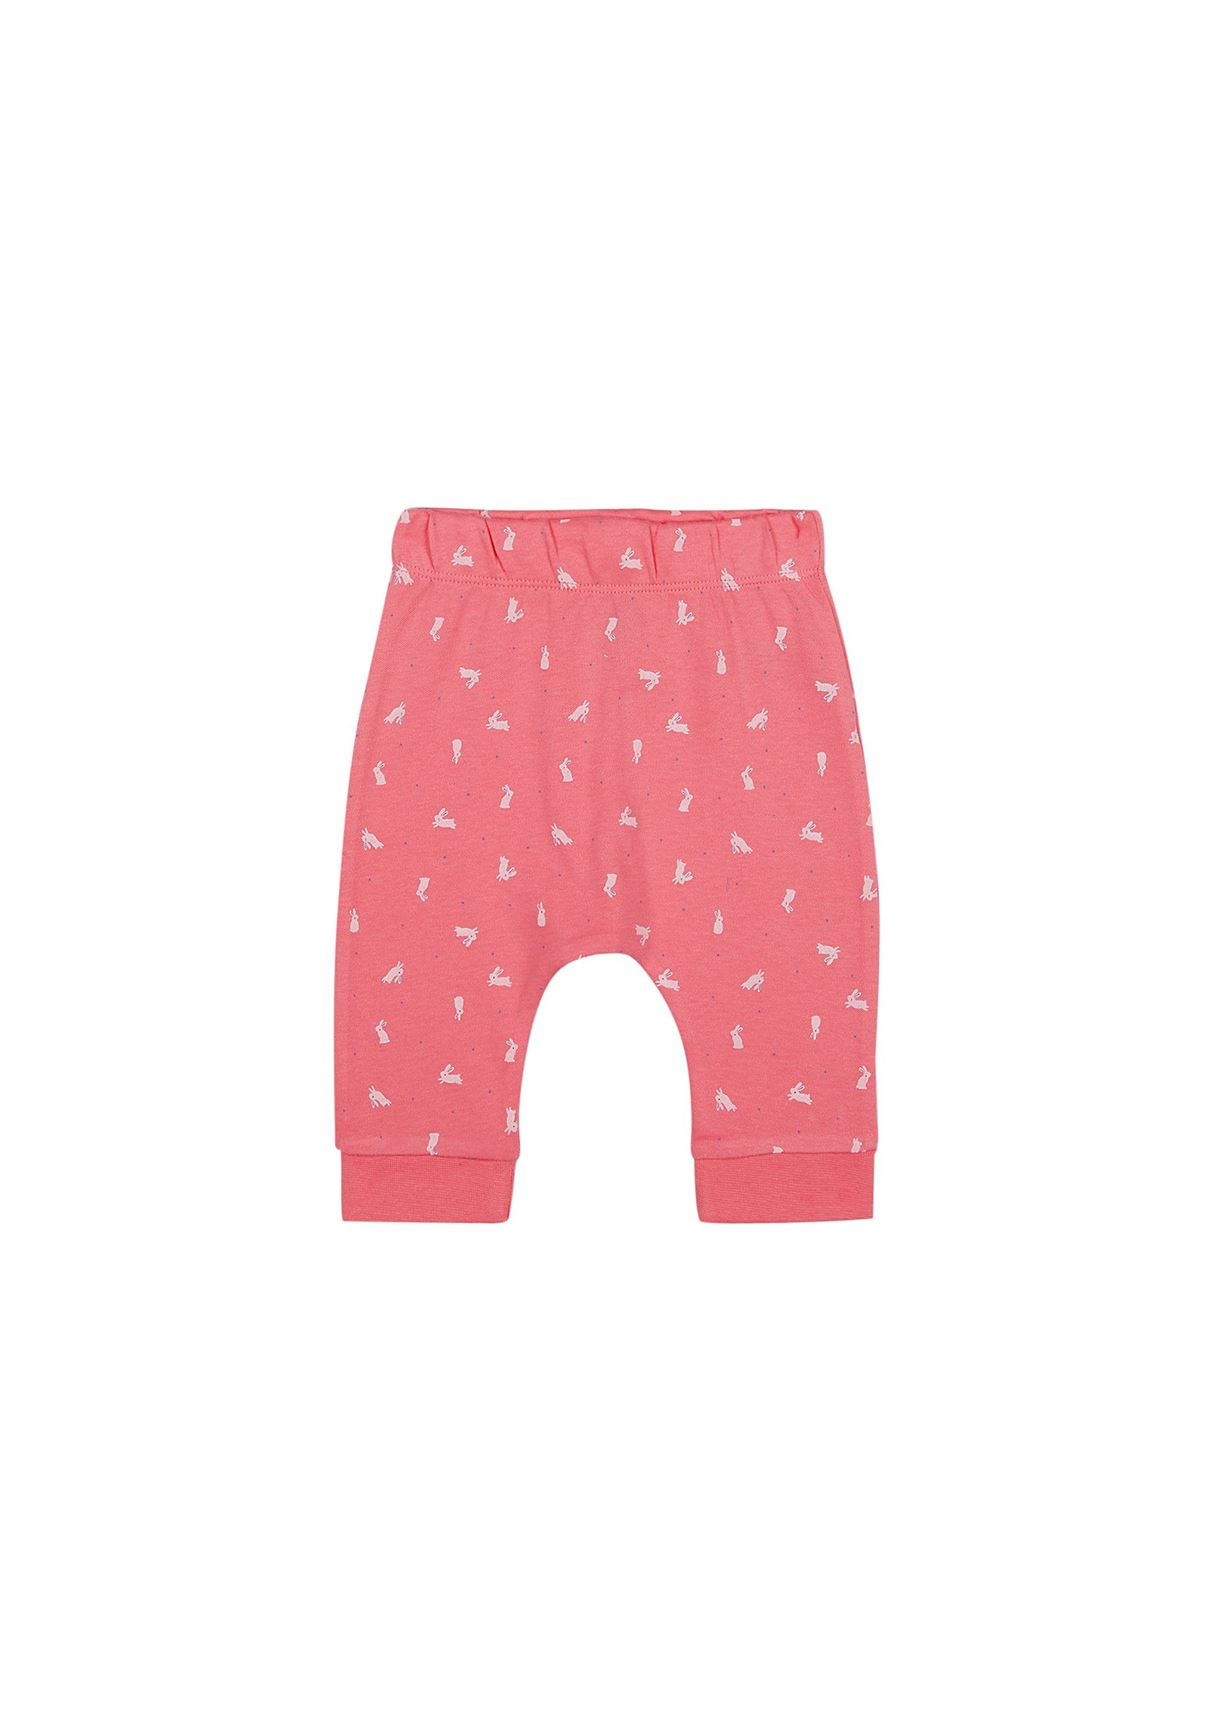 Mothercare Unisex Pink Printed Joggers